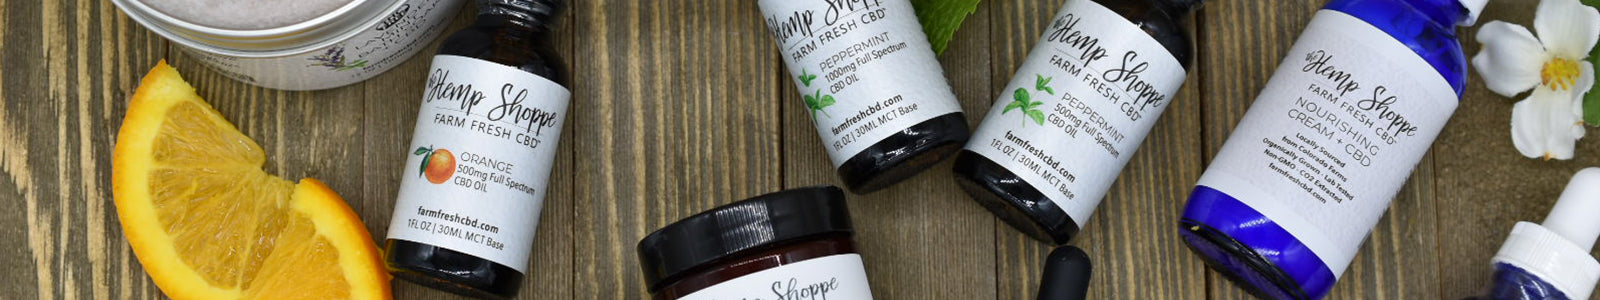 THE HERB SHOPPE | FARM FRESH CBD